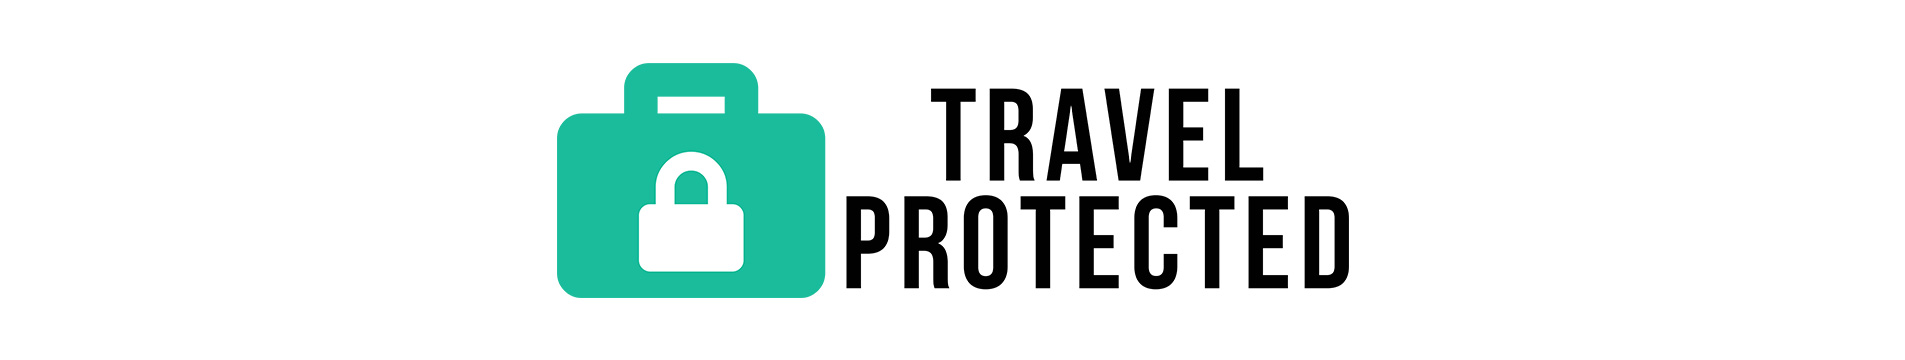 Travel Protected